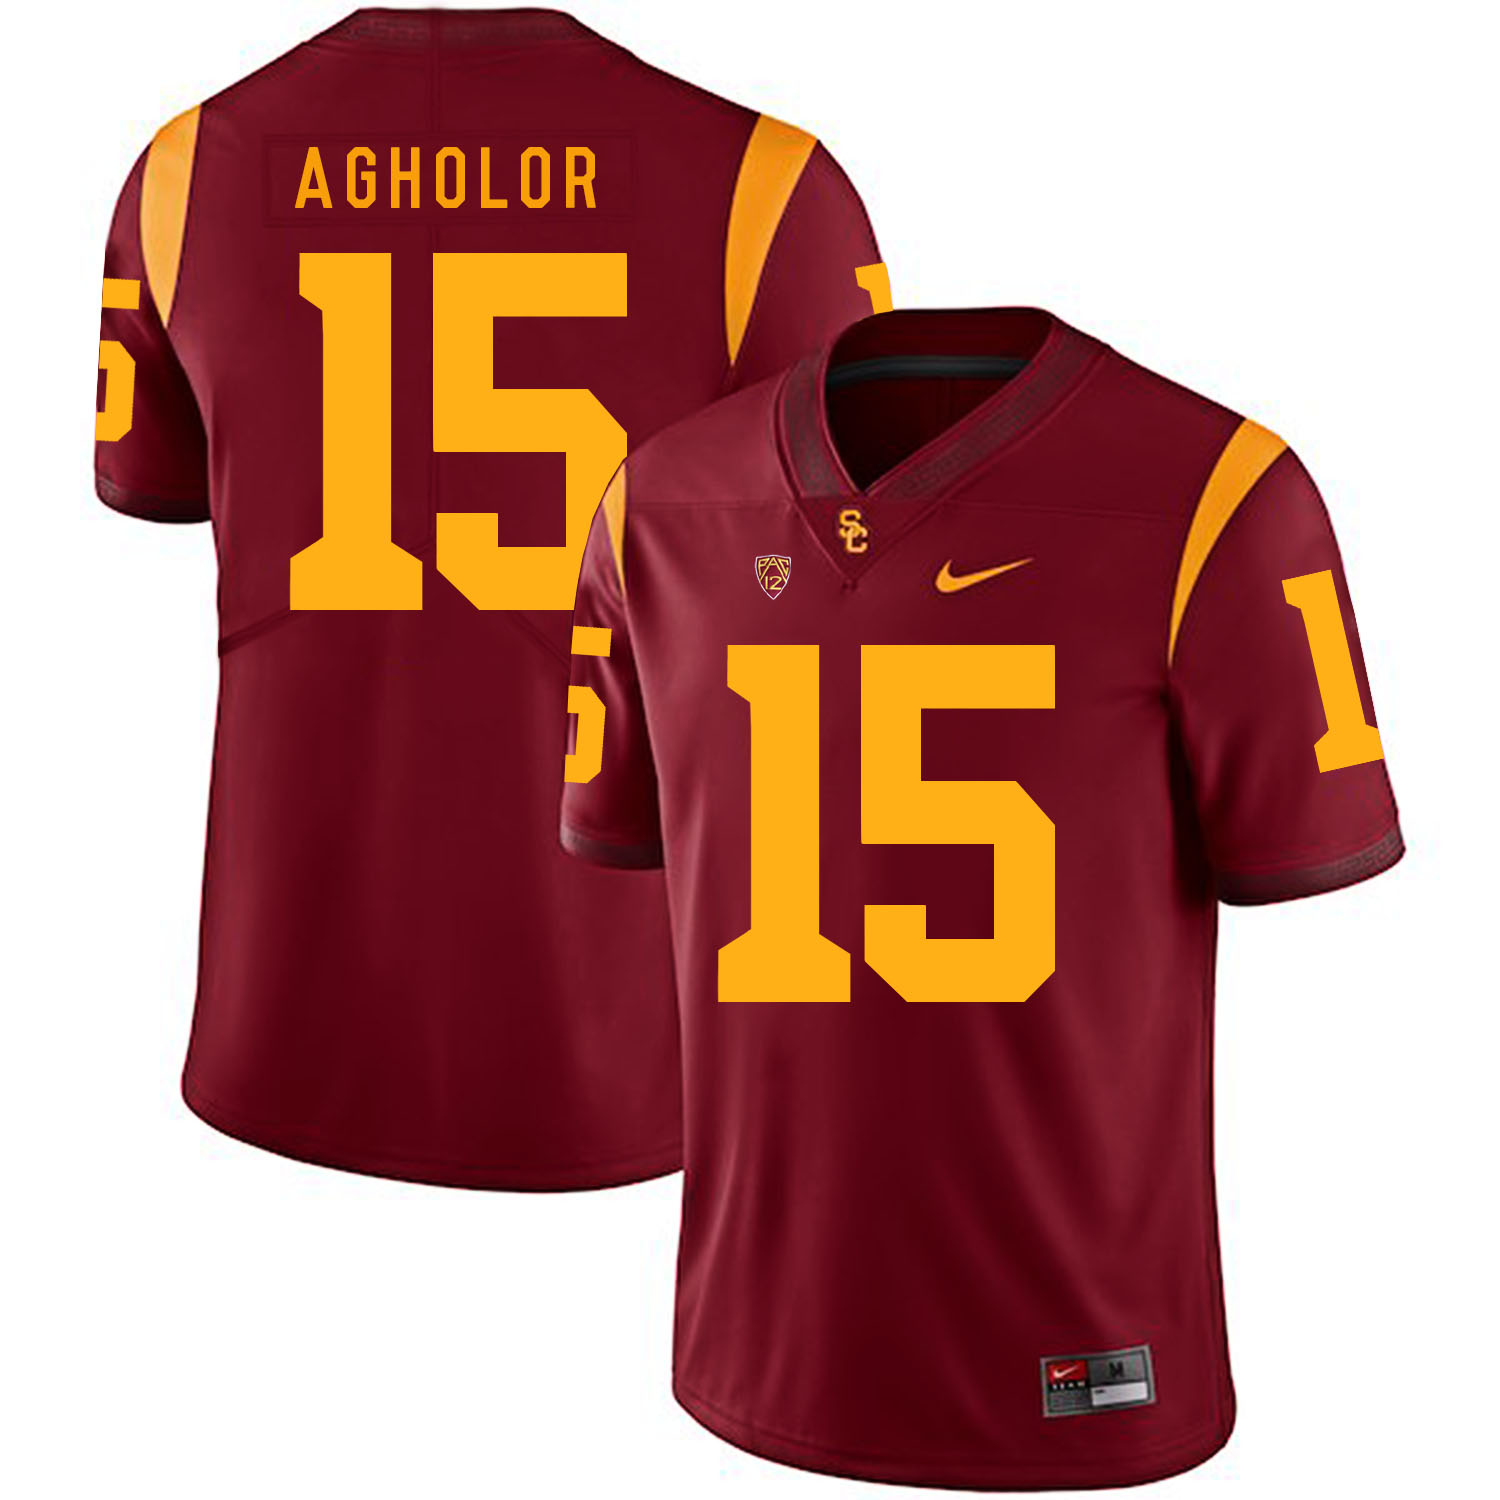 USC Trojans 15 Nelson Agholor Red College Football Jersey